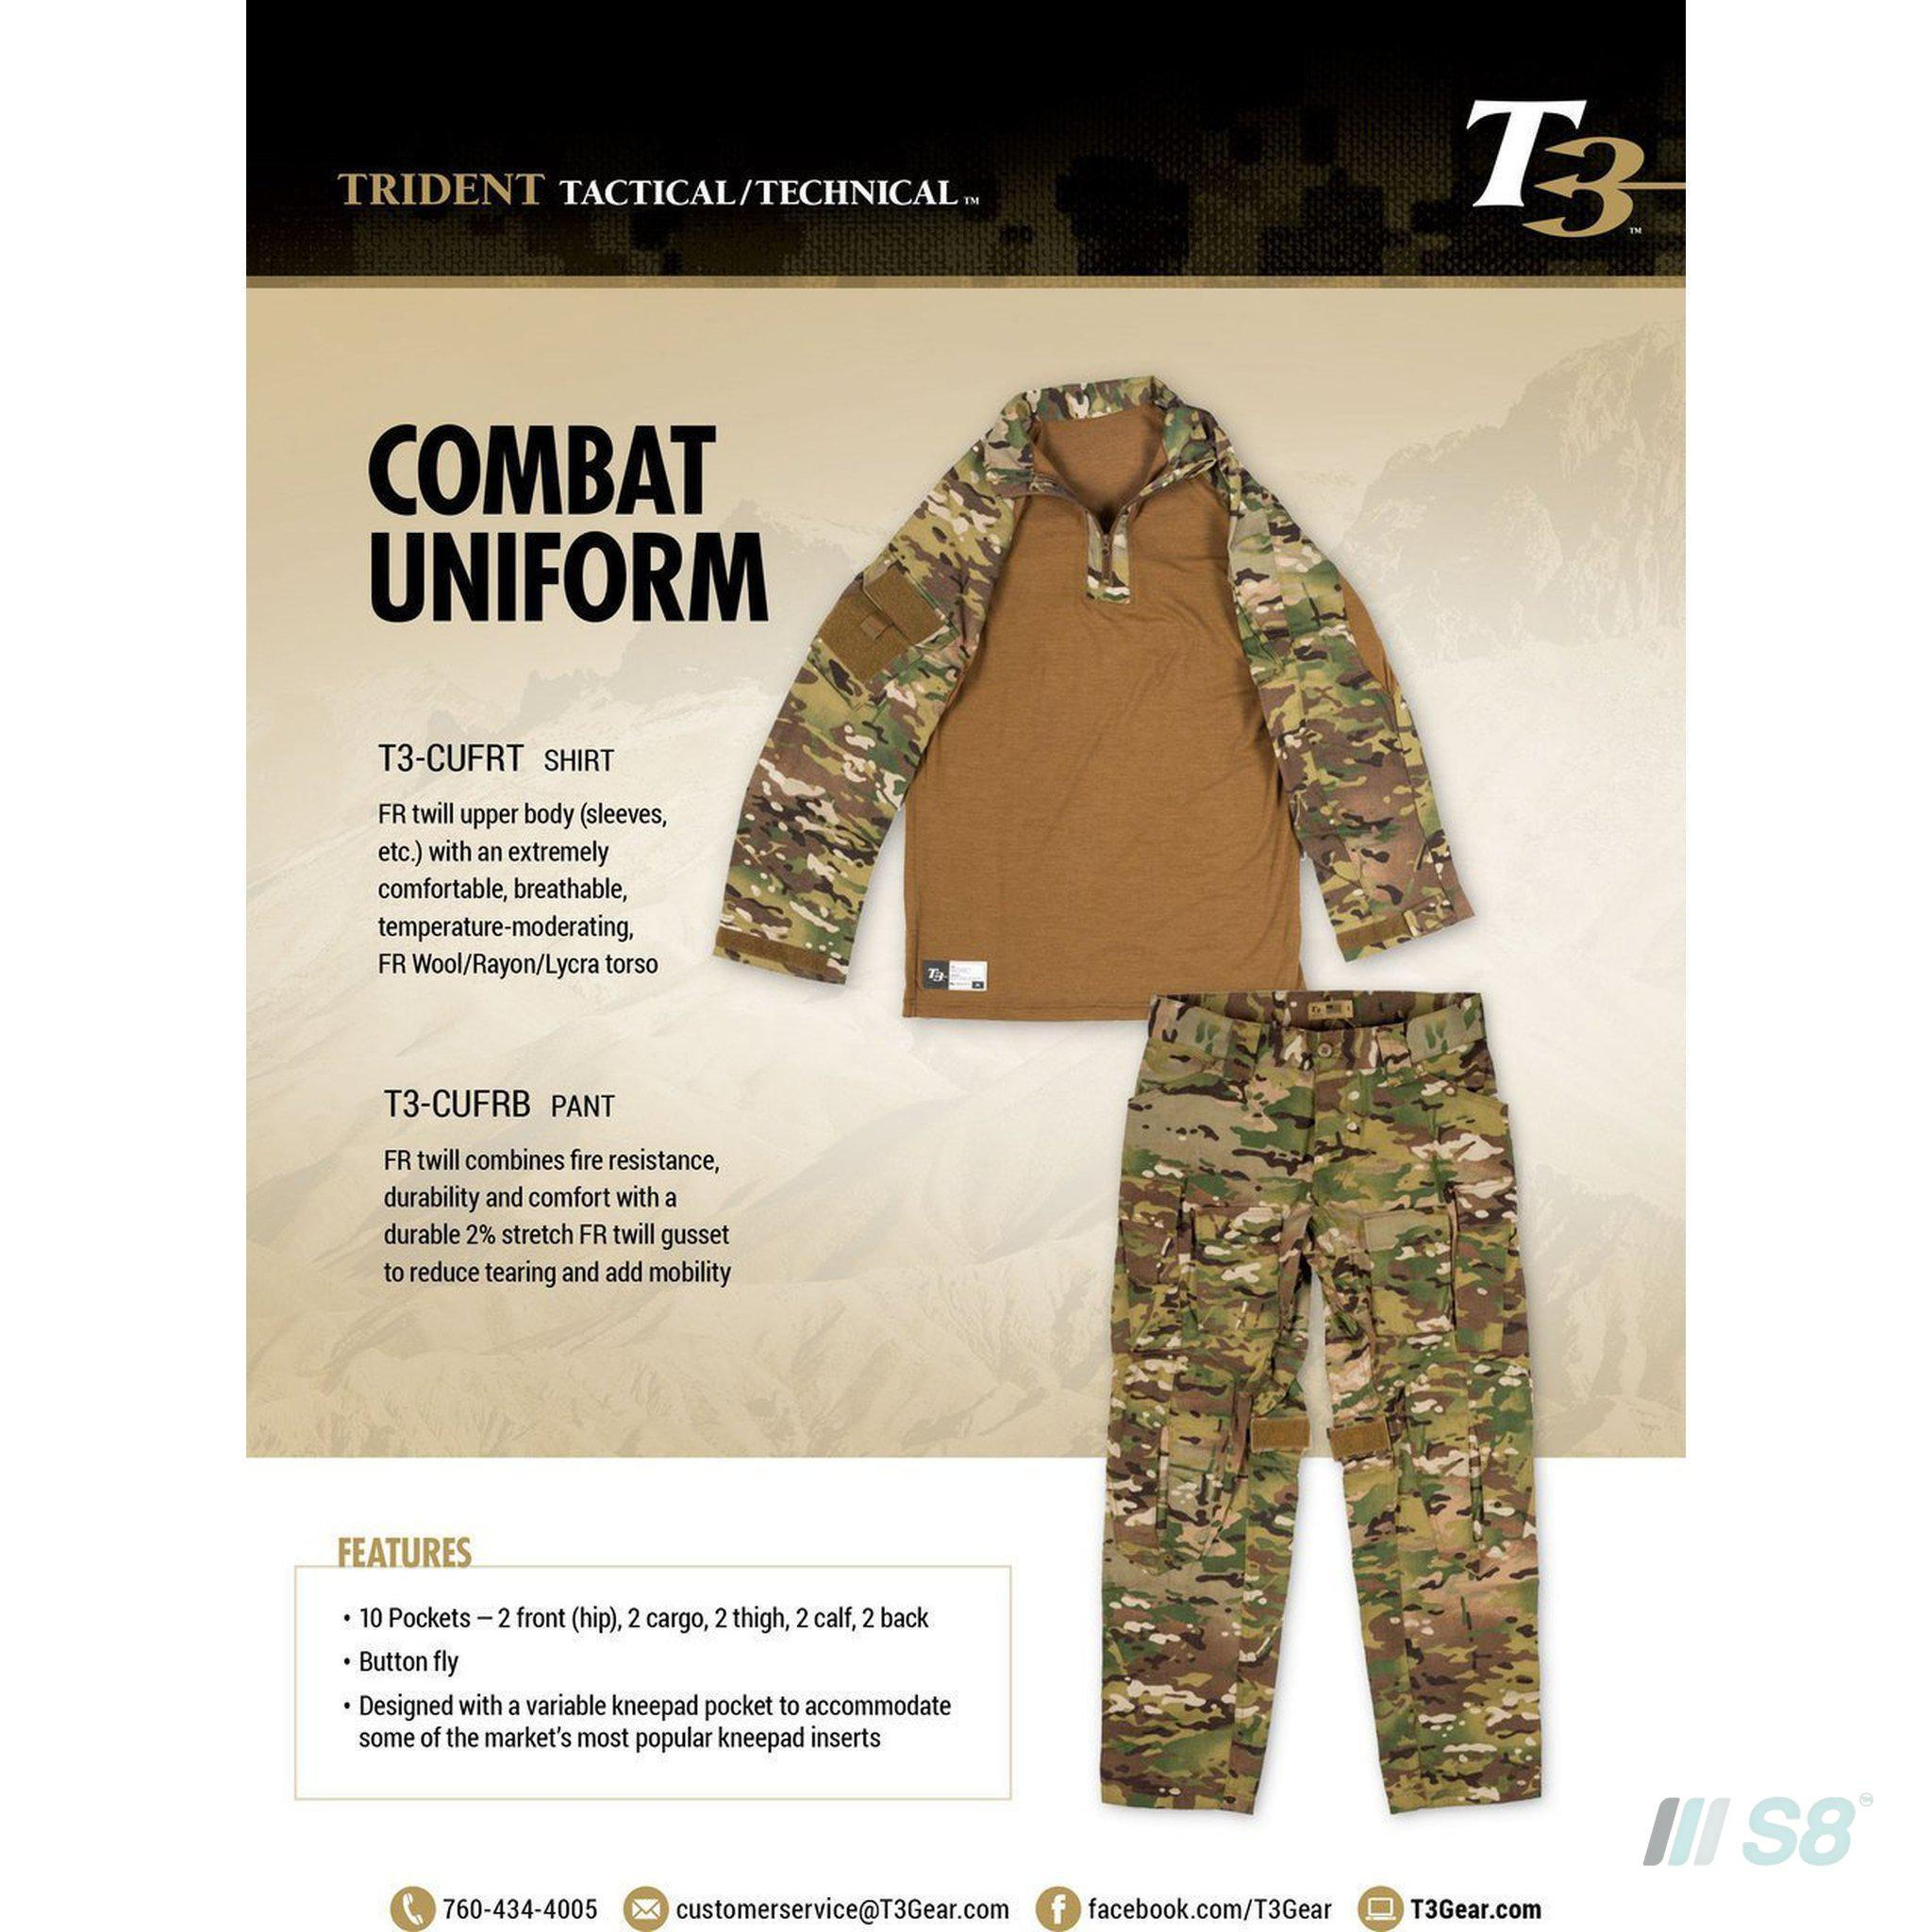 T3 Fire Resistant Combat Uniform Bottom-T3-S8 Products Group